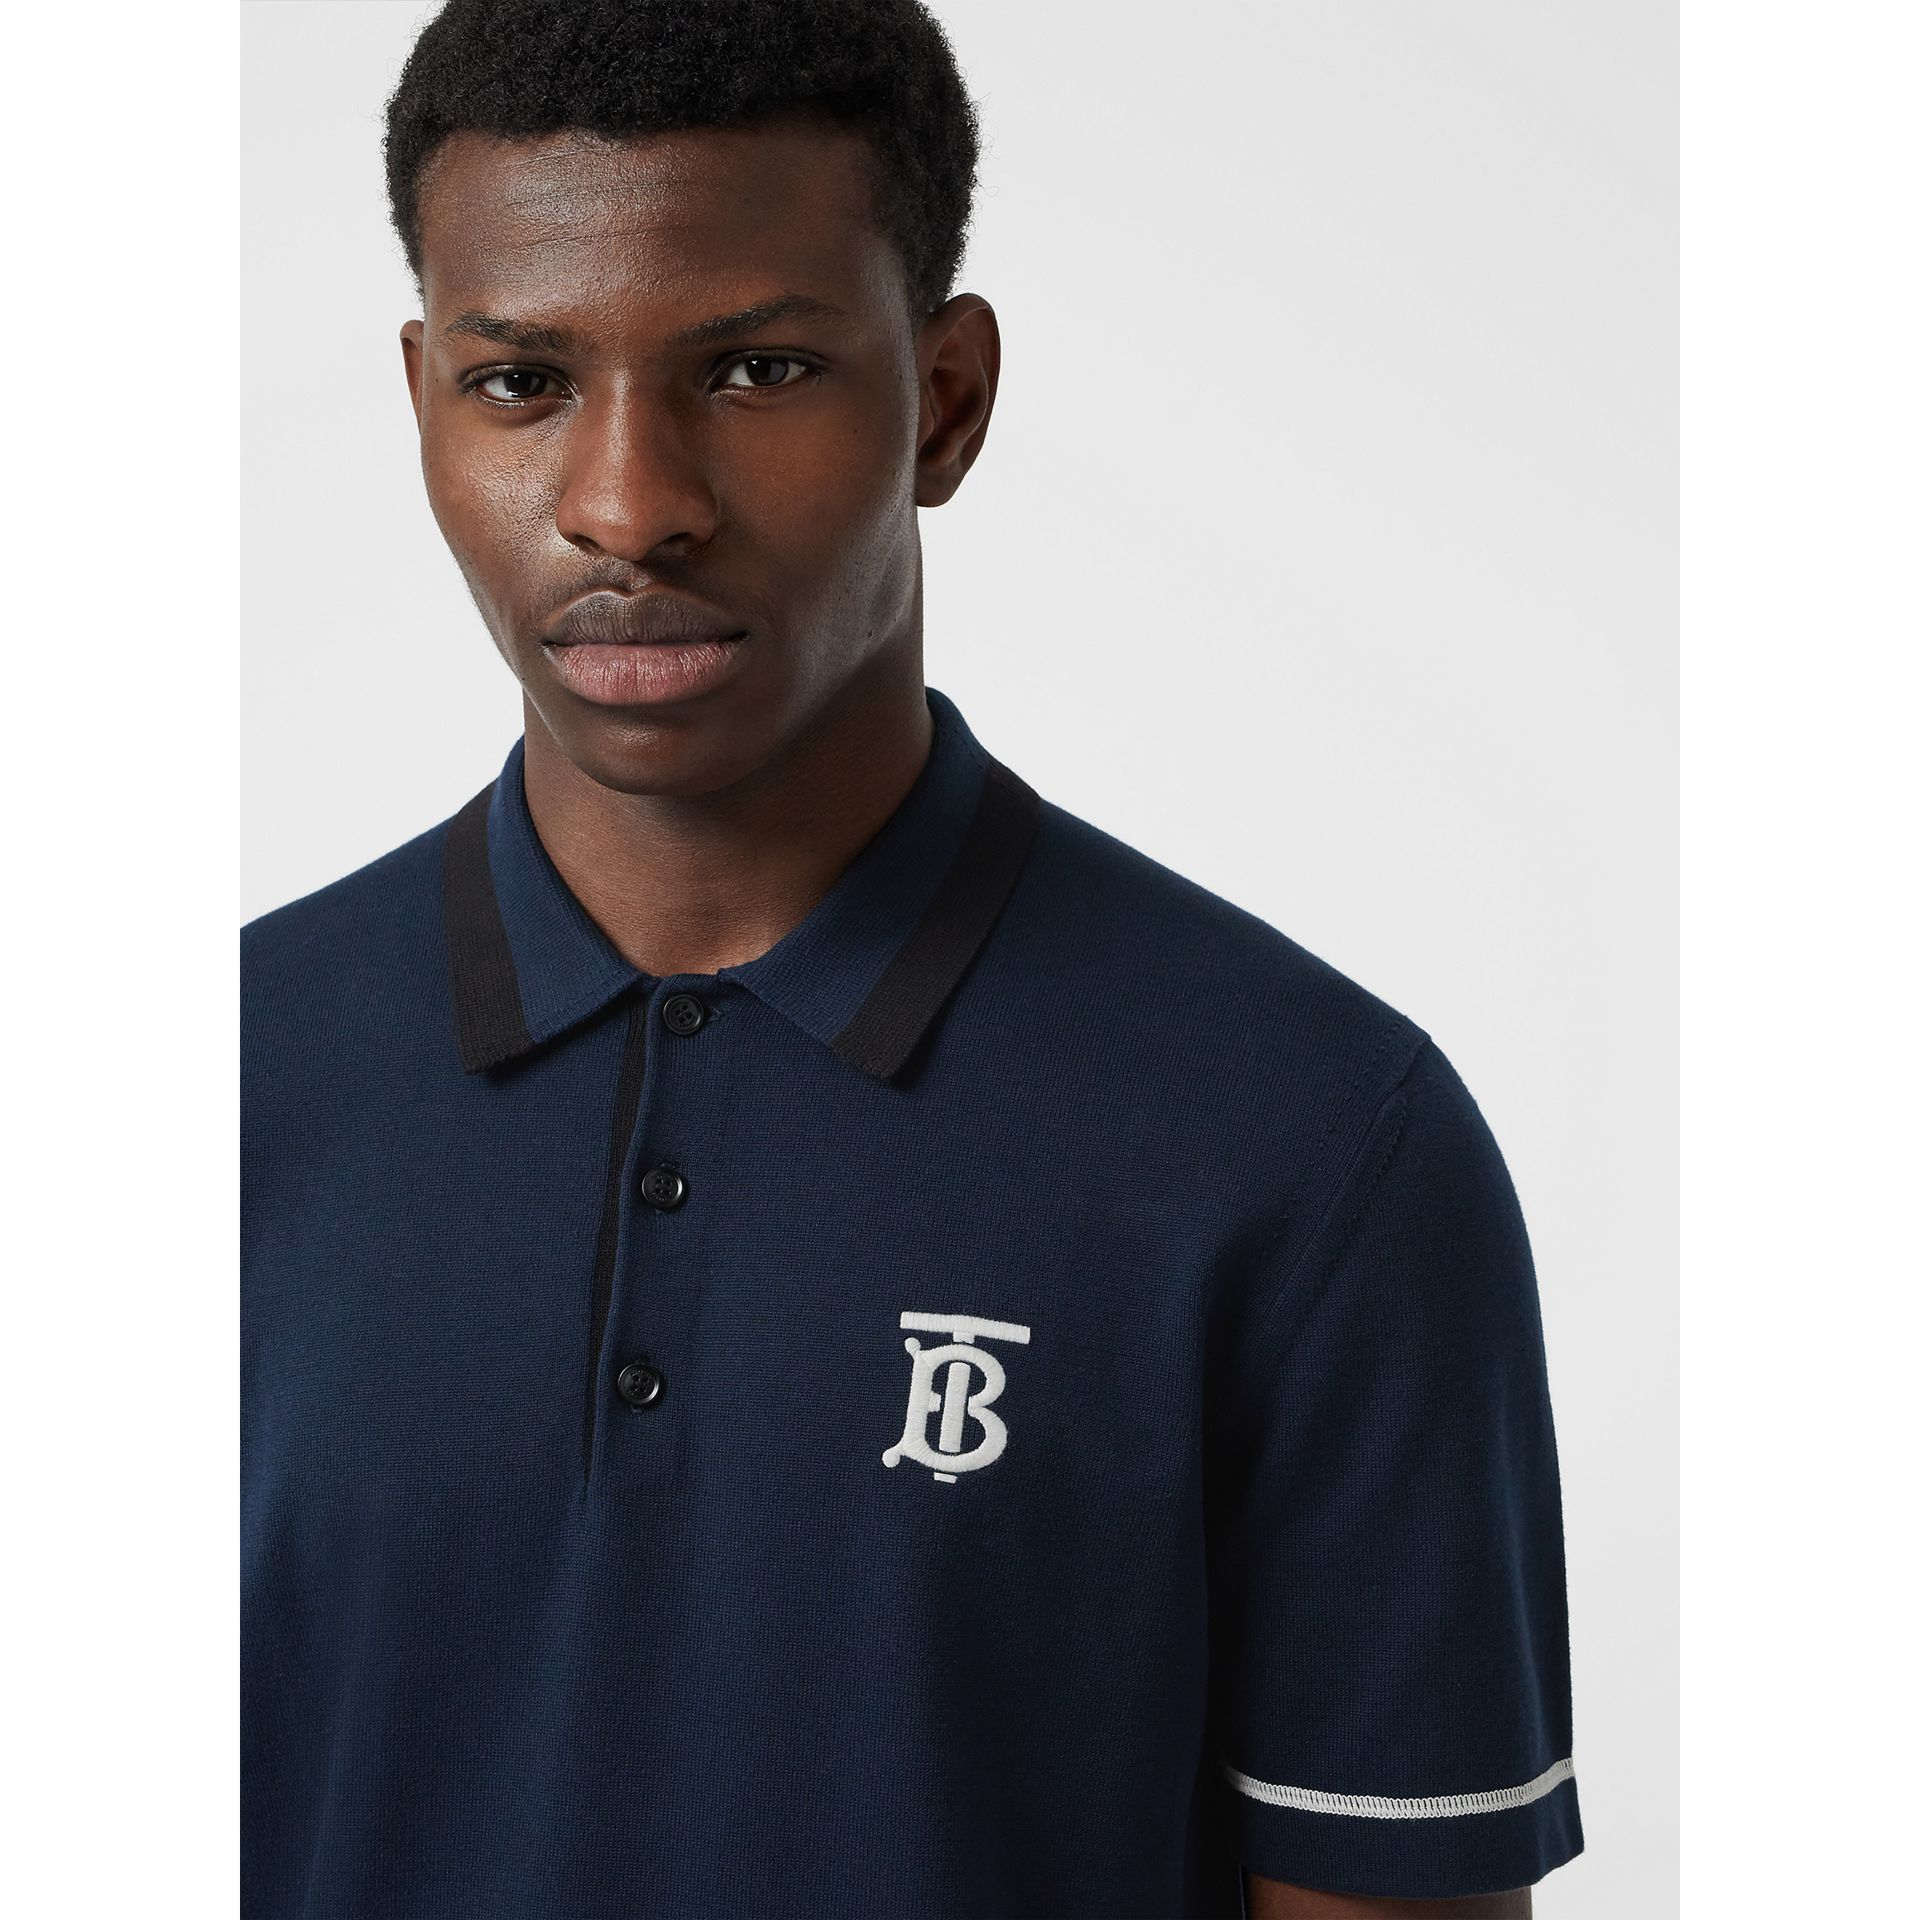 Monogram Motif Tipped Cotton Polo Shirt in Navy - Men | Burberry - gallery image 1